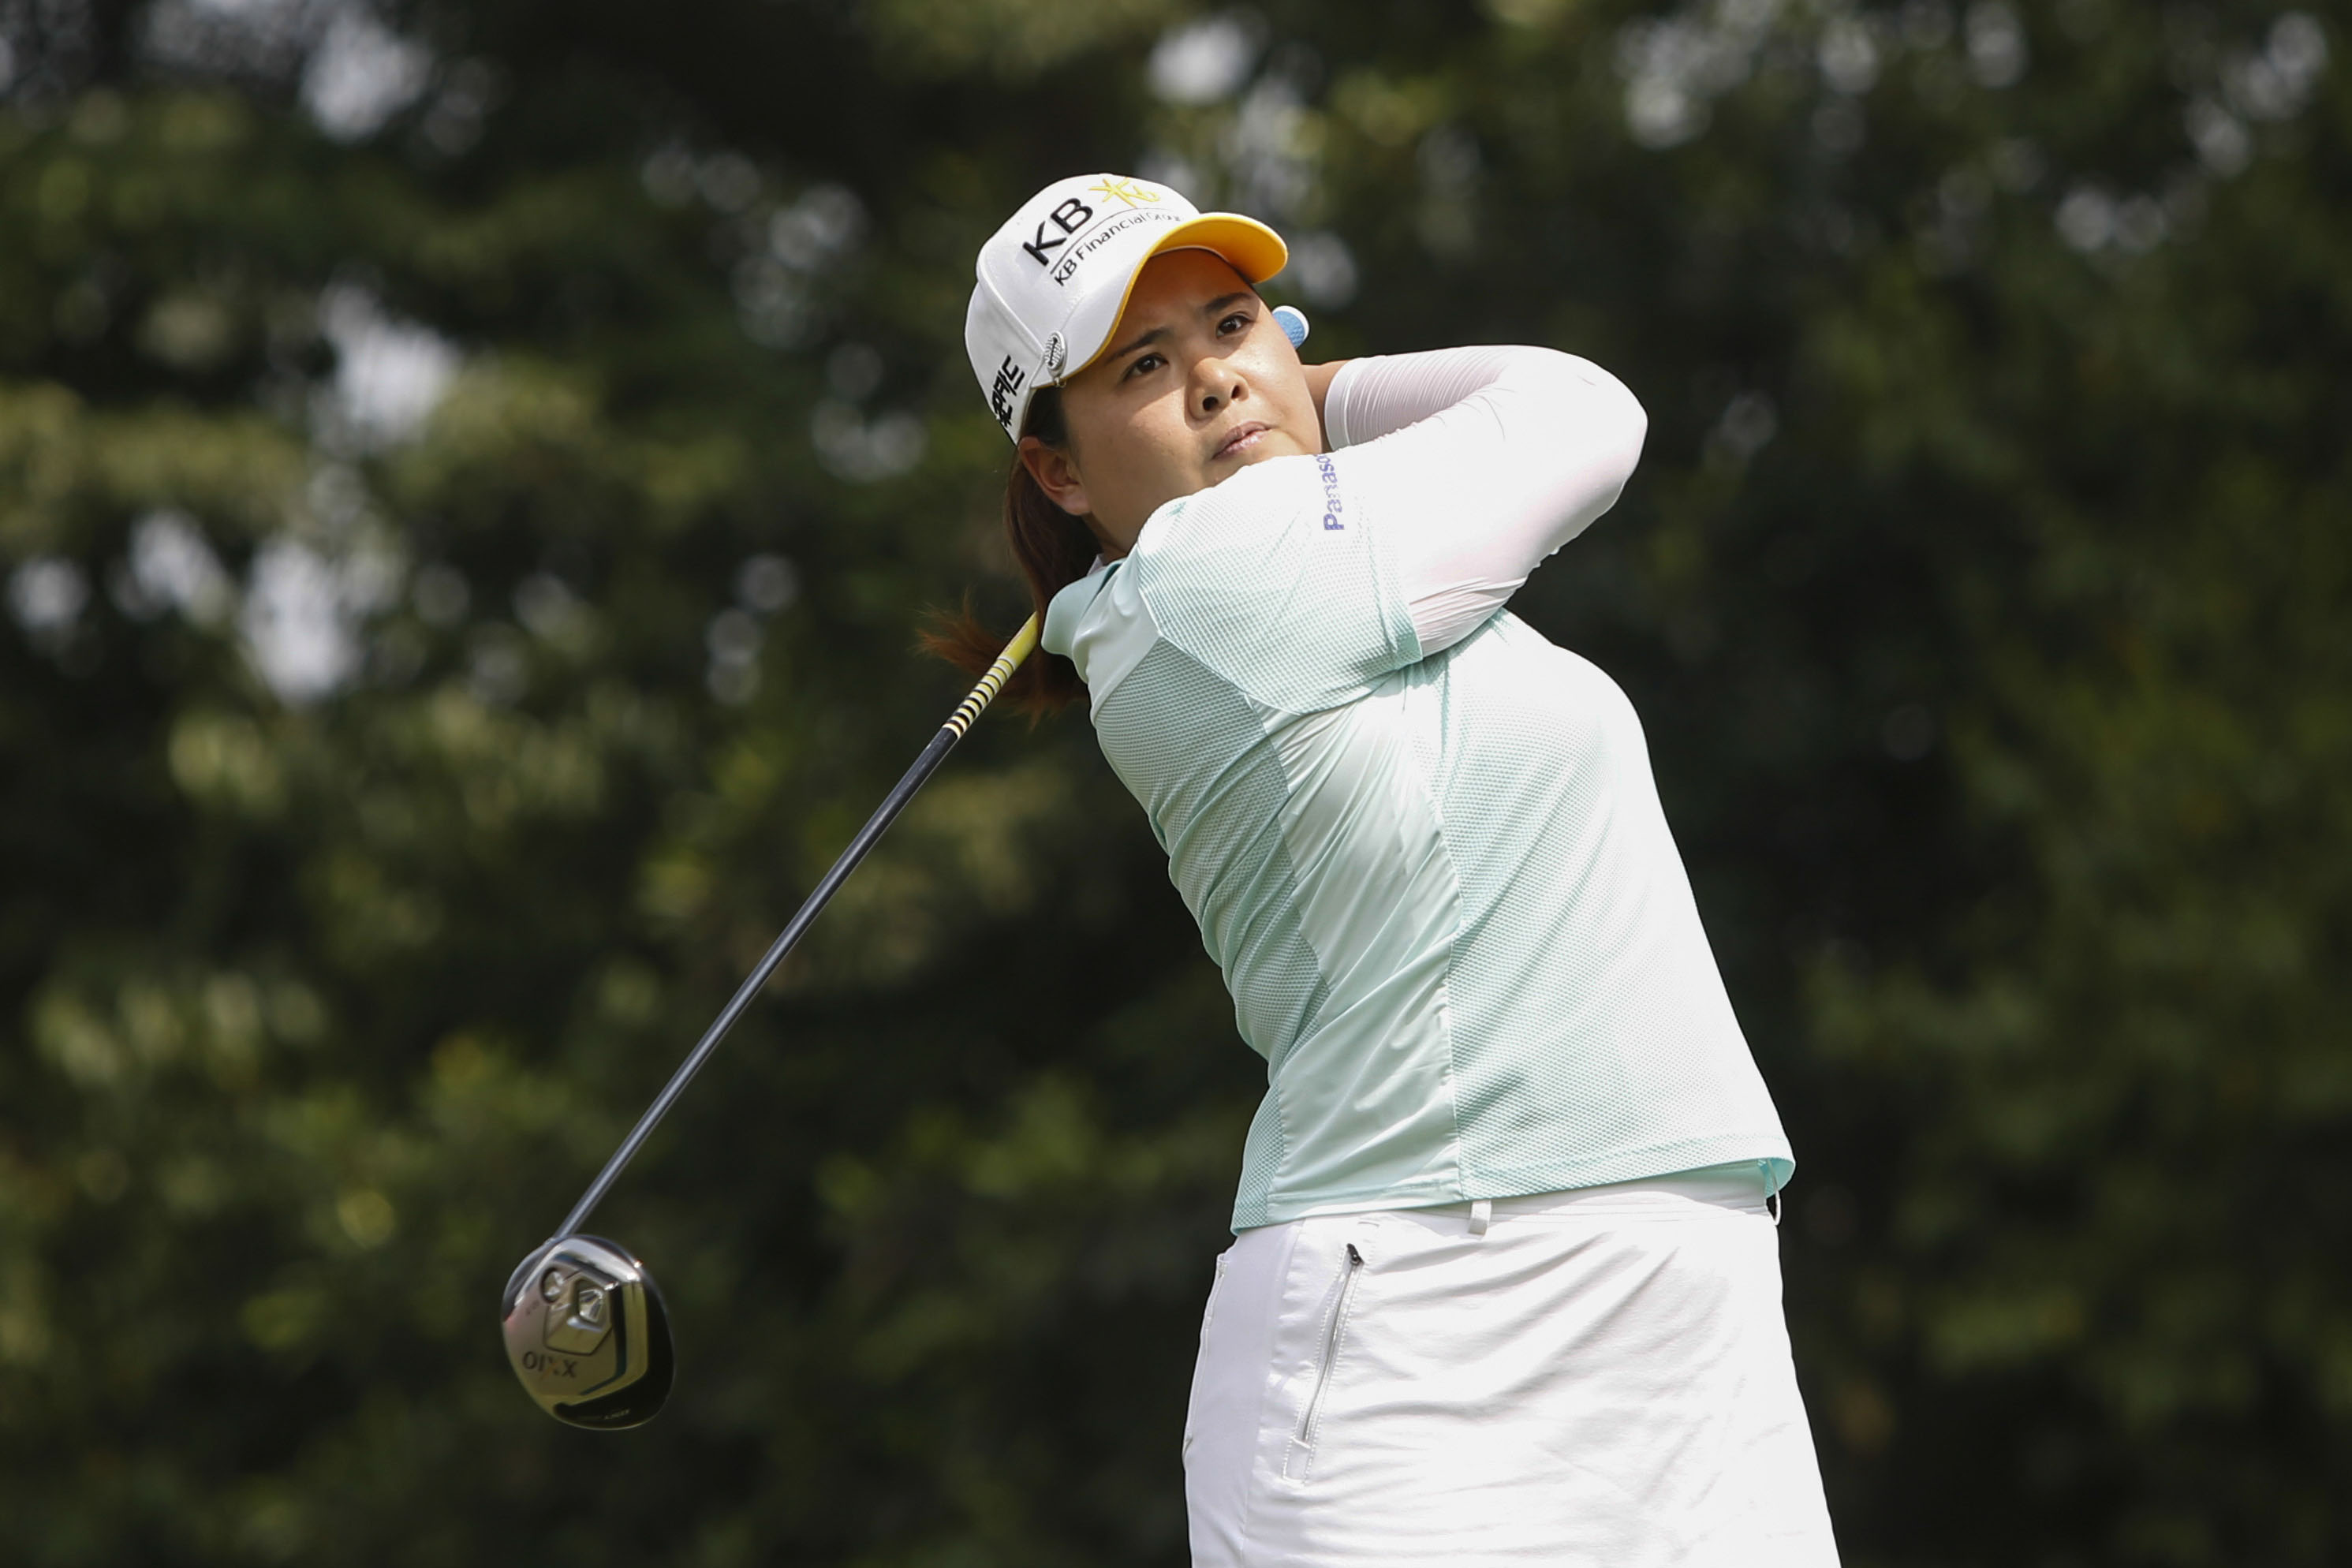 Inbee Park of South Korea tees off from the sixth hole during the first round of the LPGA Malaysia golf tournament at Kuala Lumpur Golf and Country Club in Kuala Lumpur, Malaysia on Thursday, Oct. 8, 2015. (AP Photo/Joshua Paul)